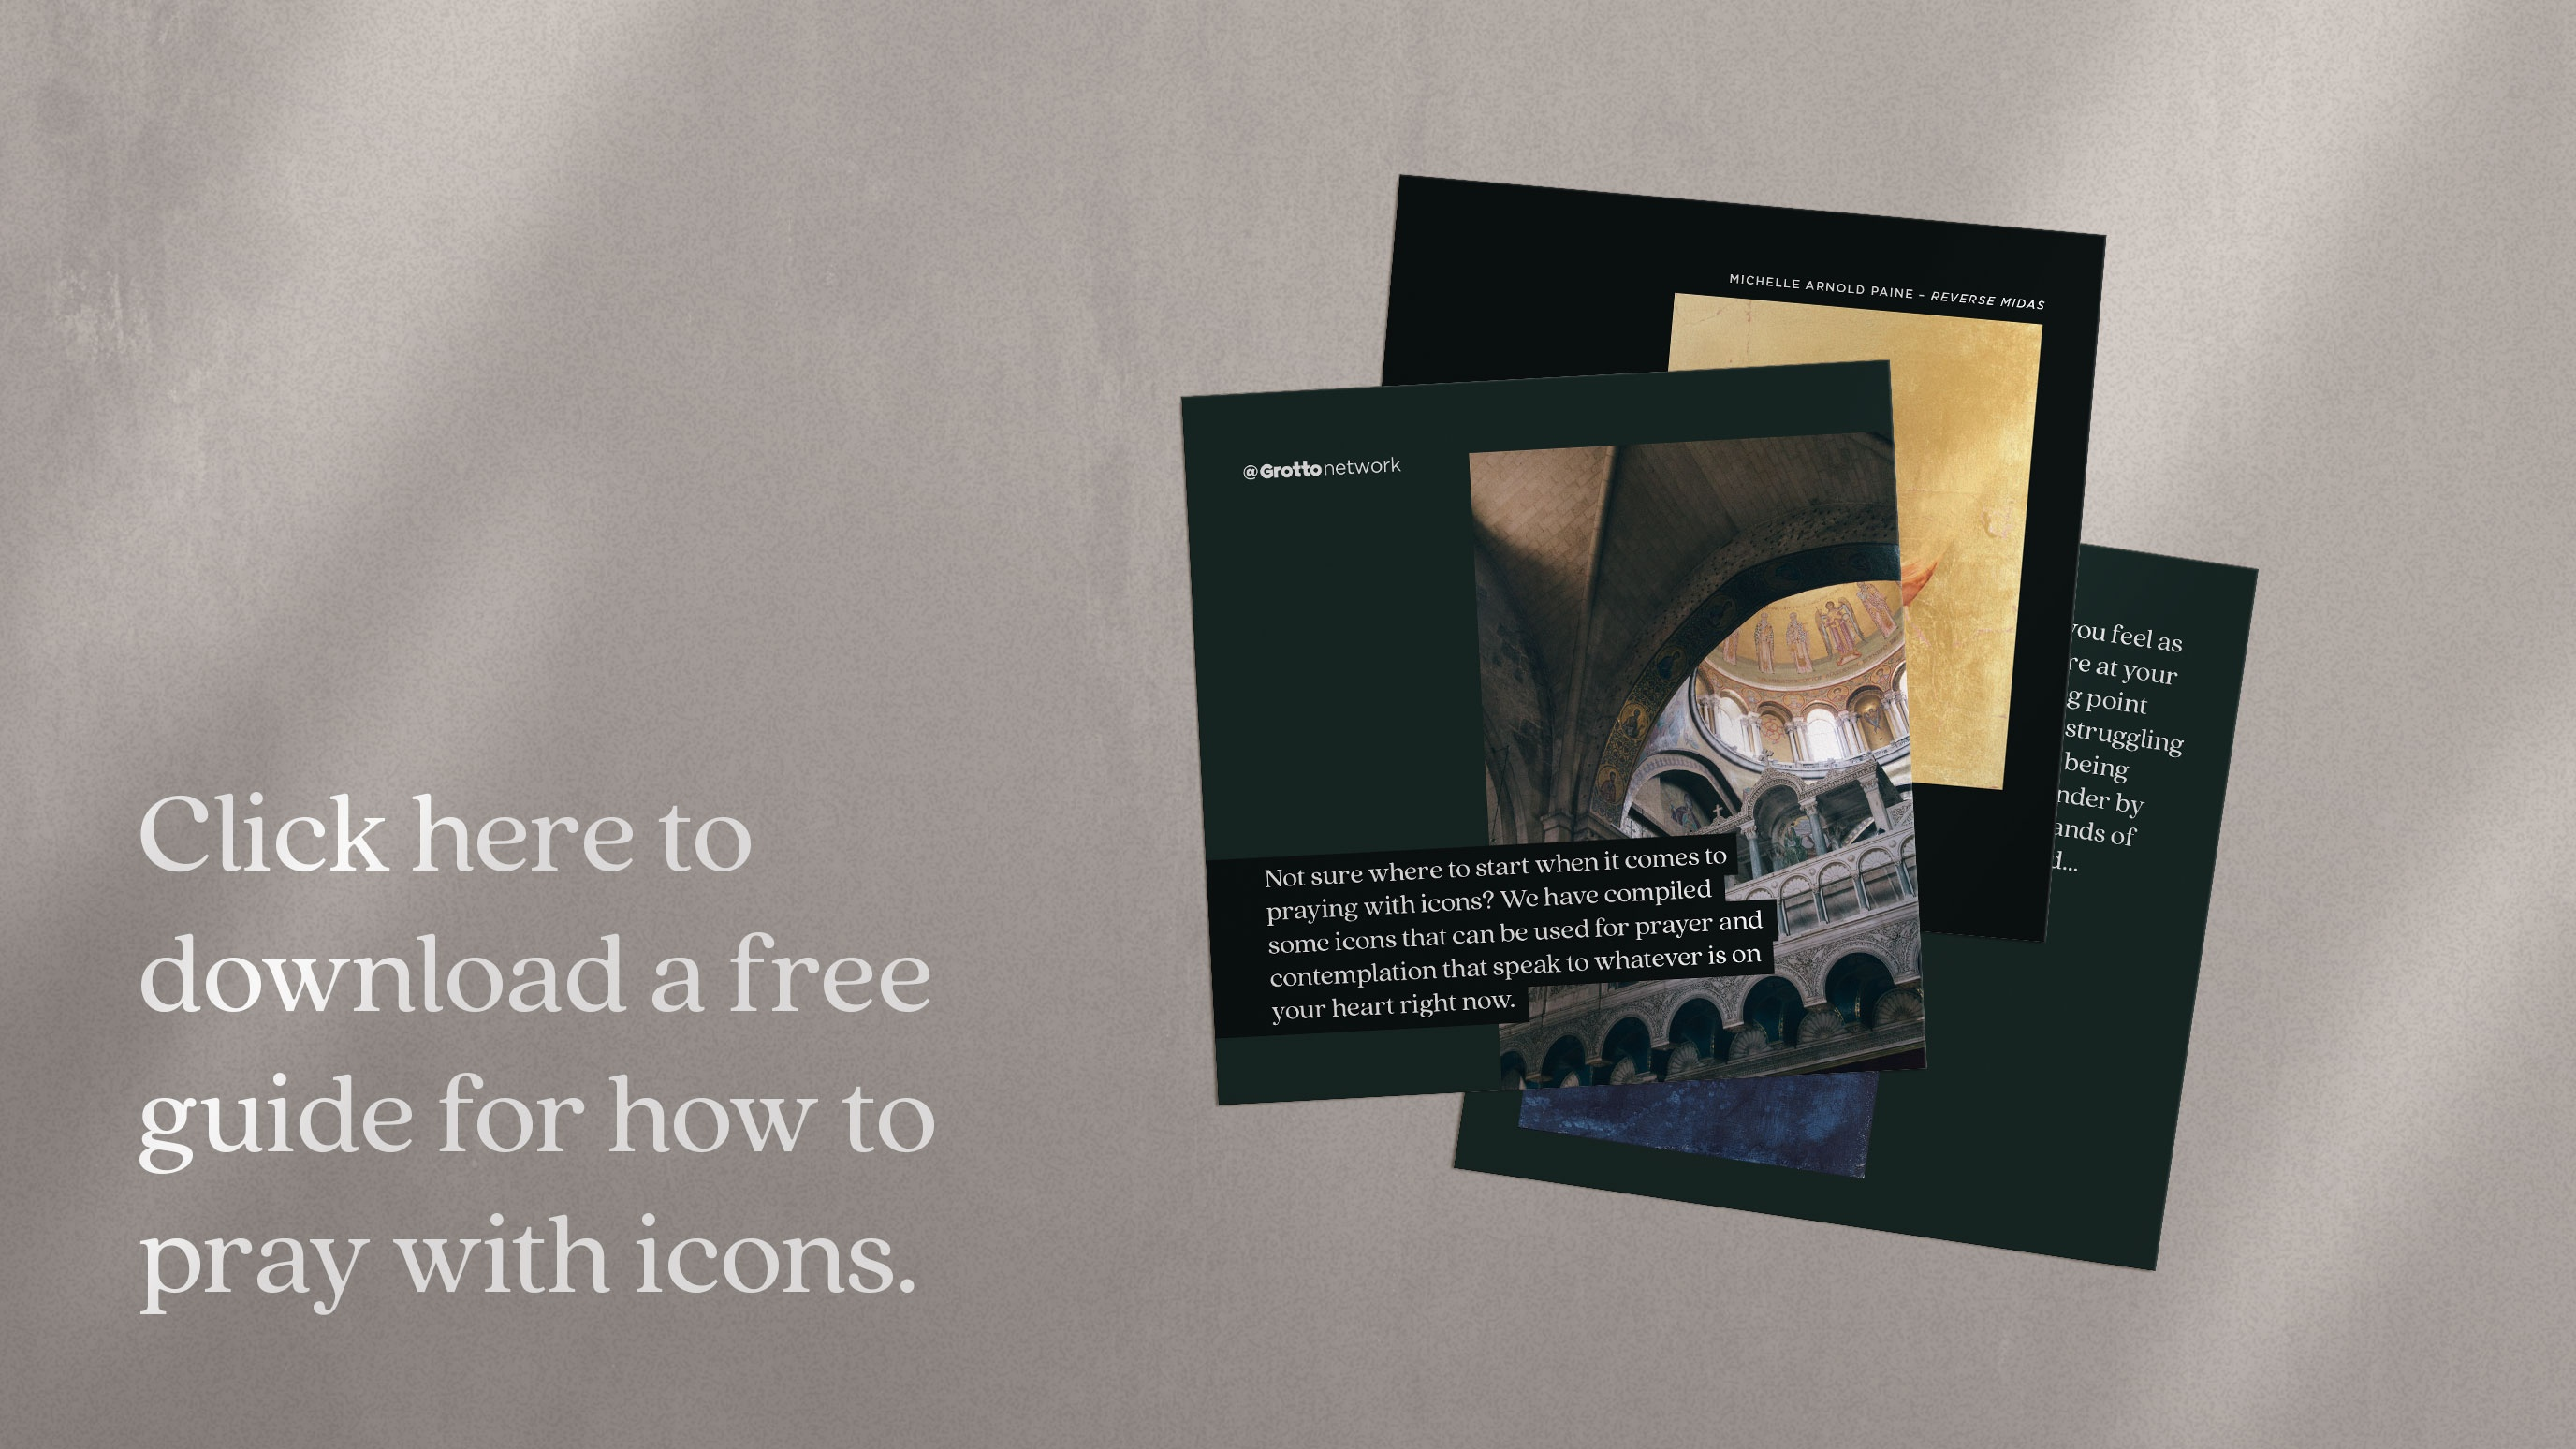 Click here to download a free guide for how to pray with icons.